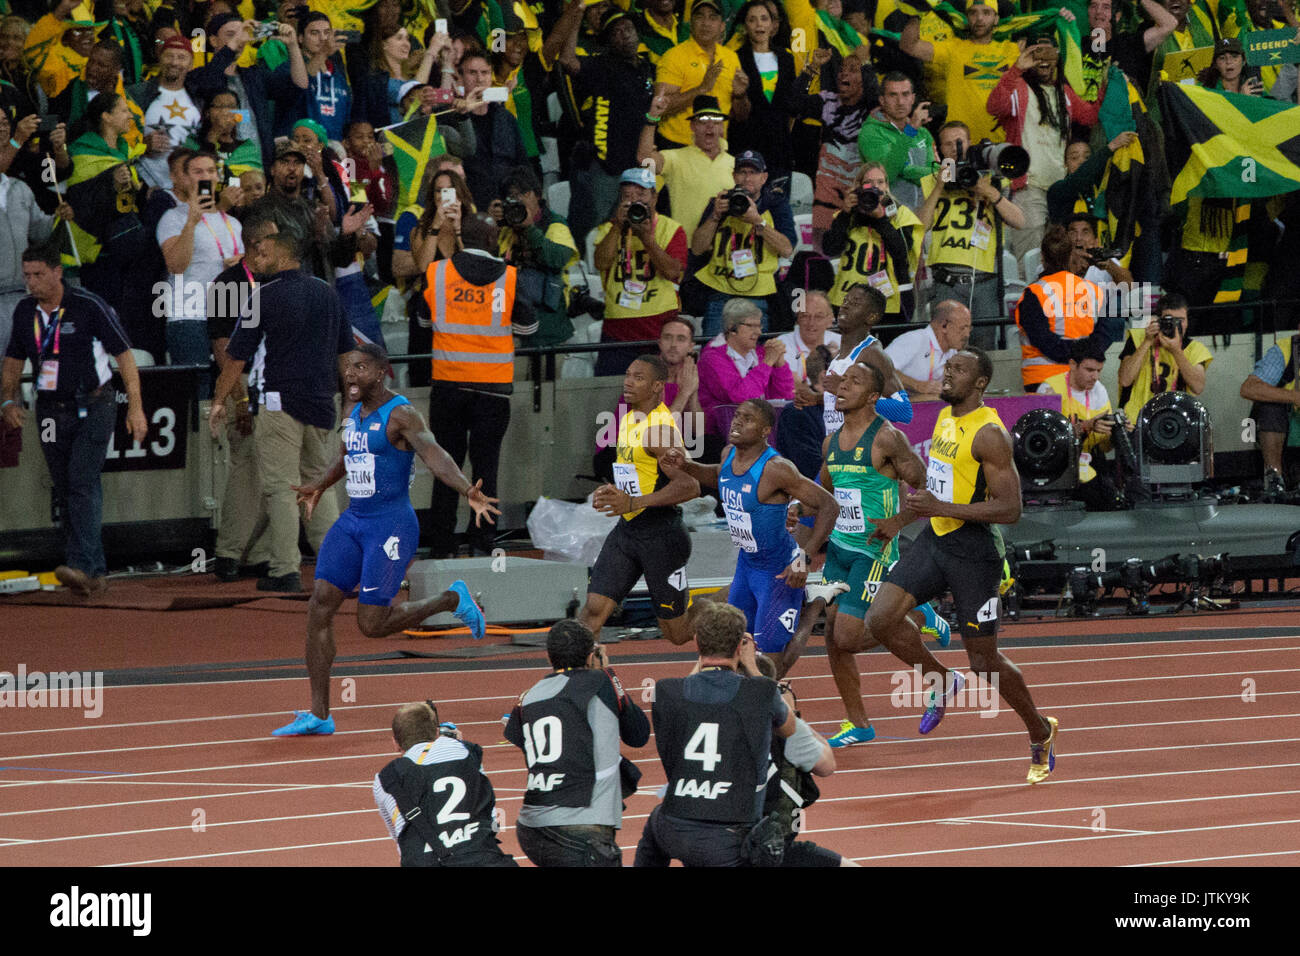 IAAF world athletic Championships, London stadium 2017 - Stock Image